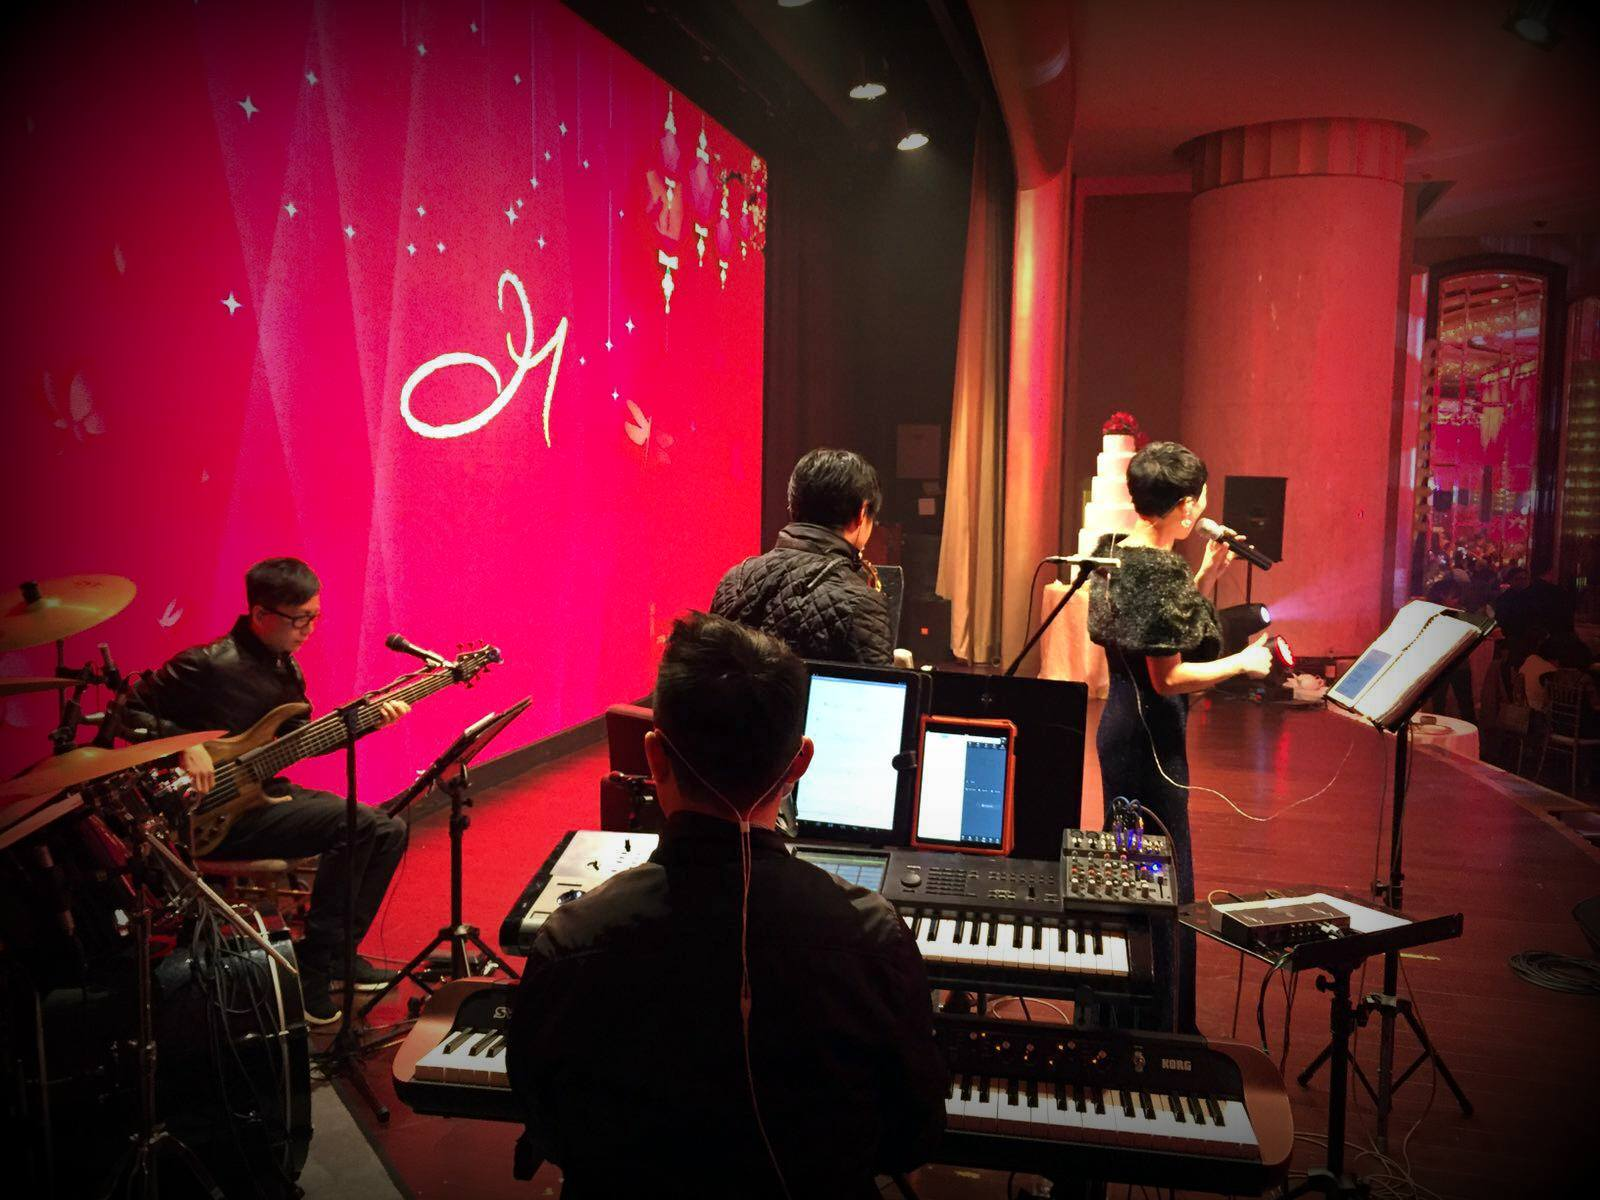 Unison Production Live Music band performance - Wedding ceremony and wedding banquet in Grand Hyatt Hotel, Jan2016